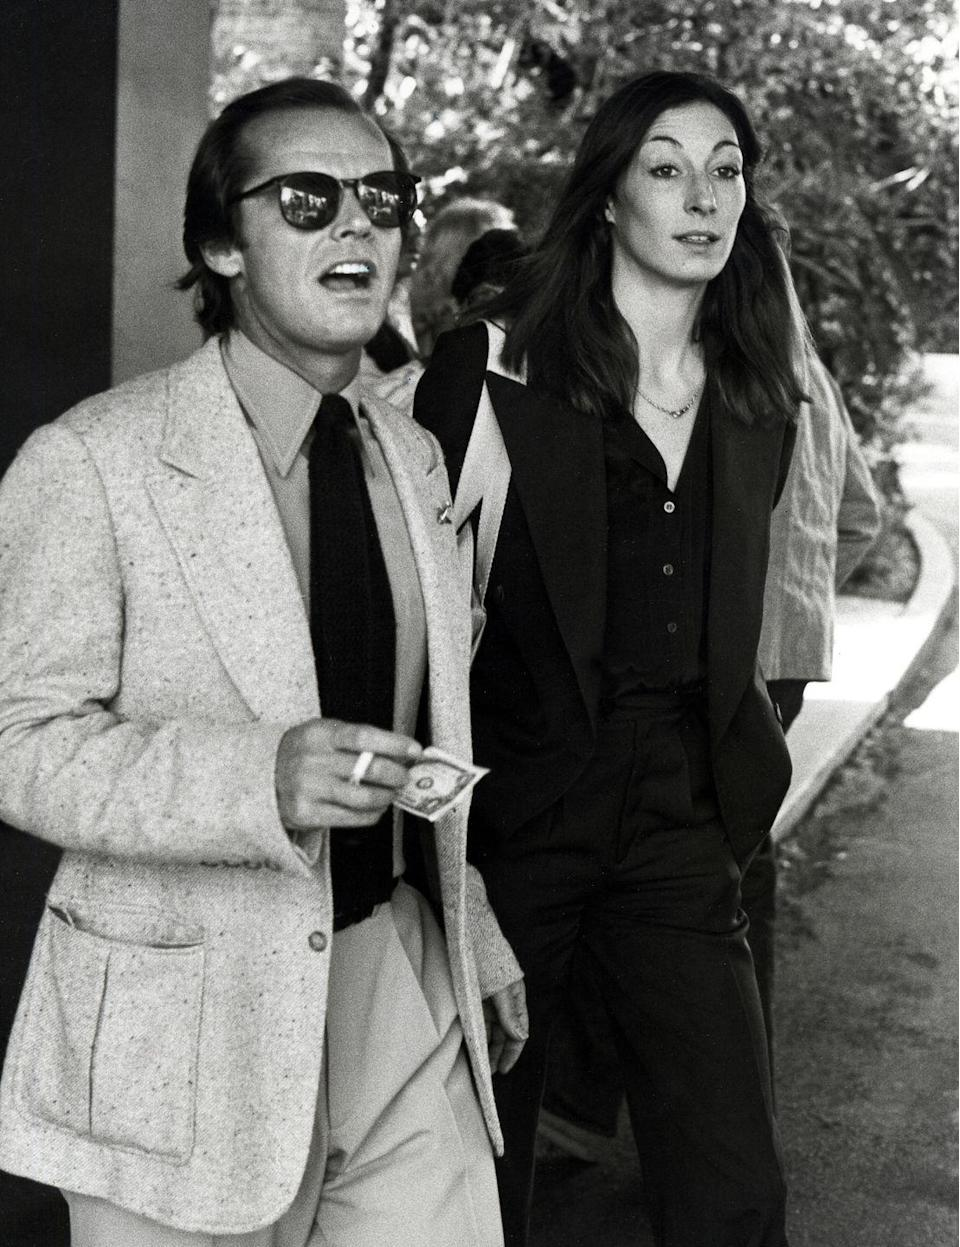 <p>Nicholson, who was dating the much-younger Anjelica Huston, had reached peak Nicholson at 40 (the shades, the suit, the smoke). </p>